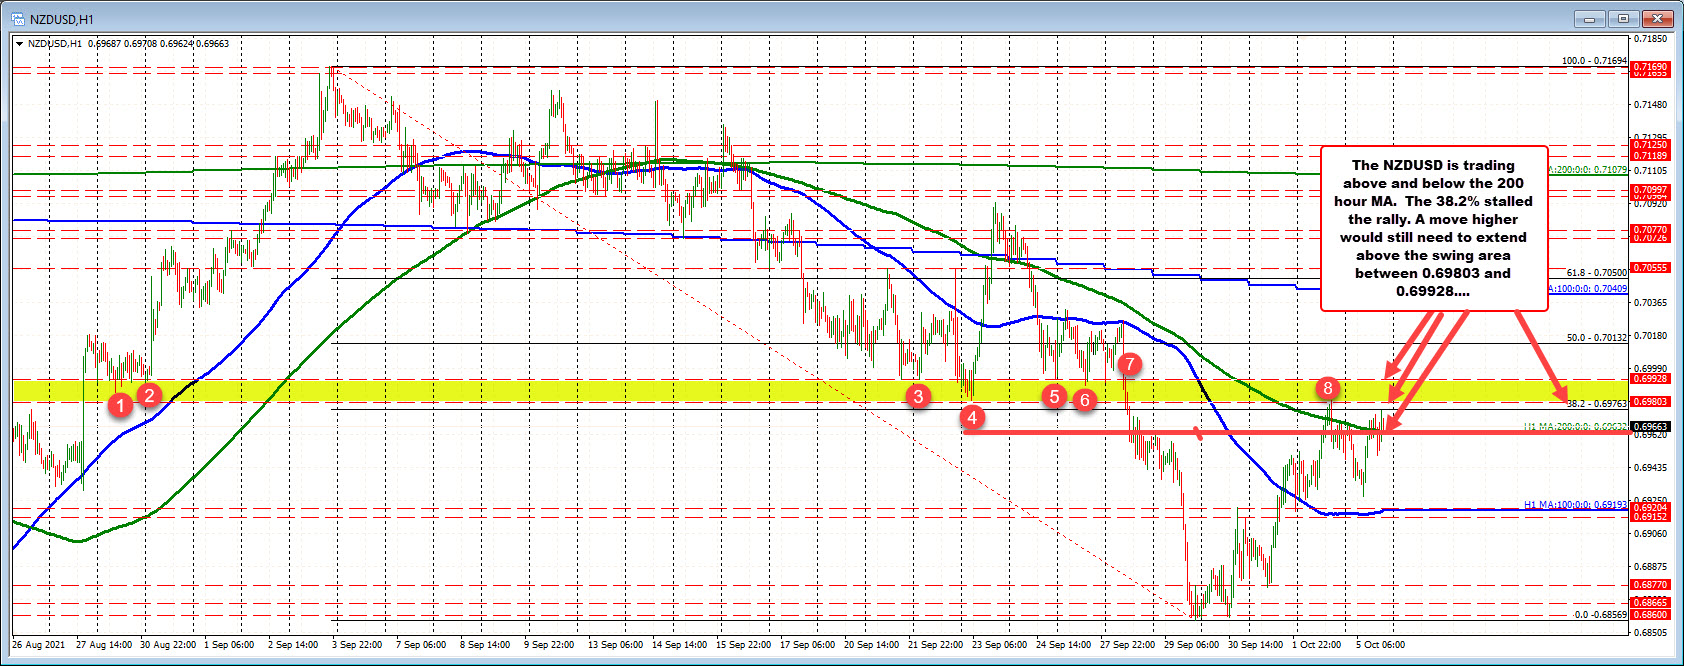 NZDUSD continues to trade above and below the 200 hour MA